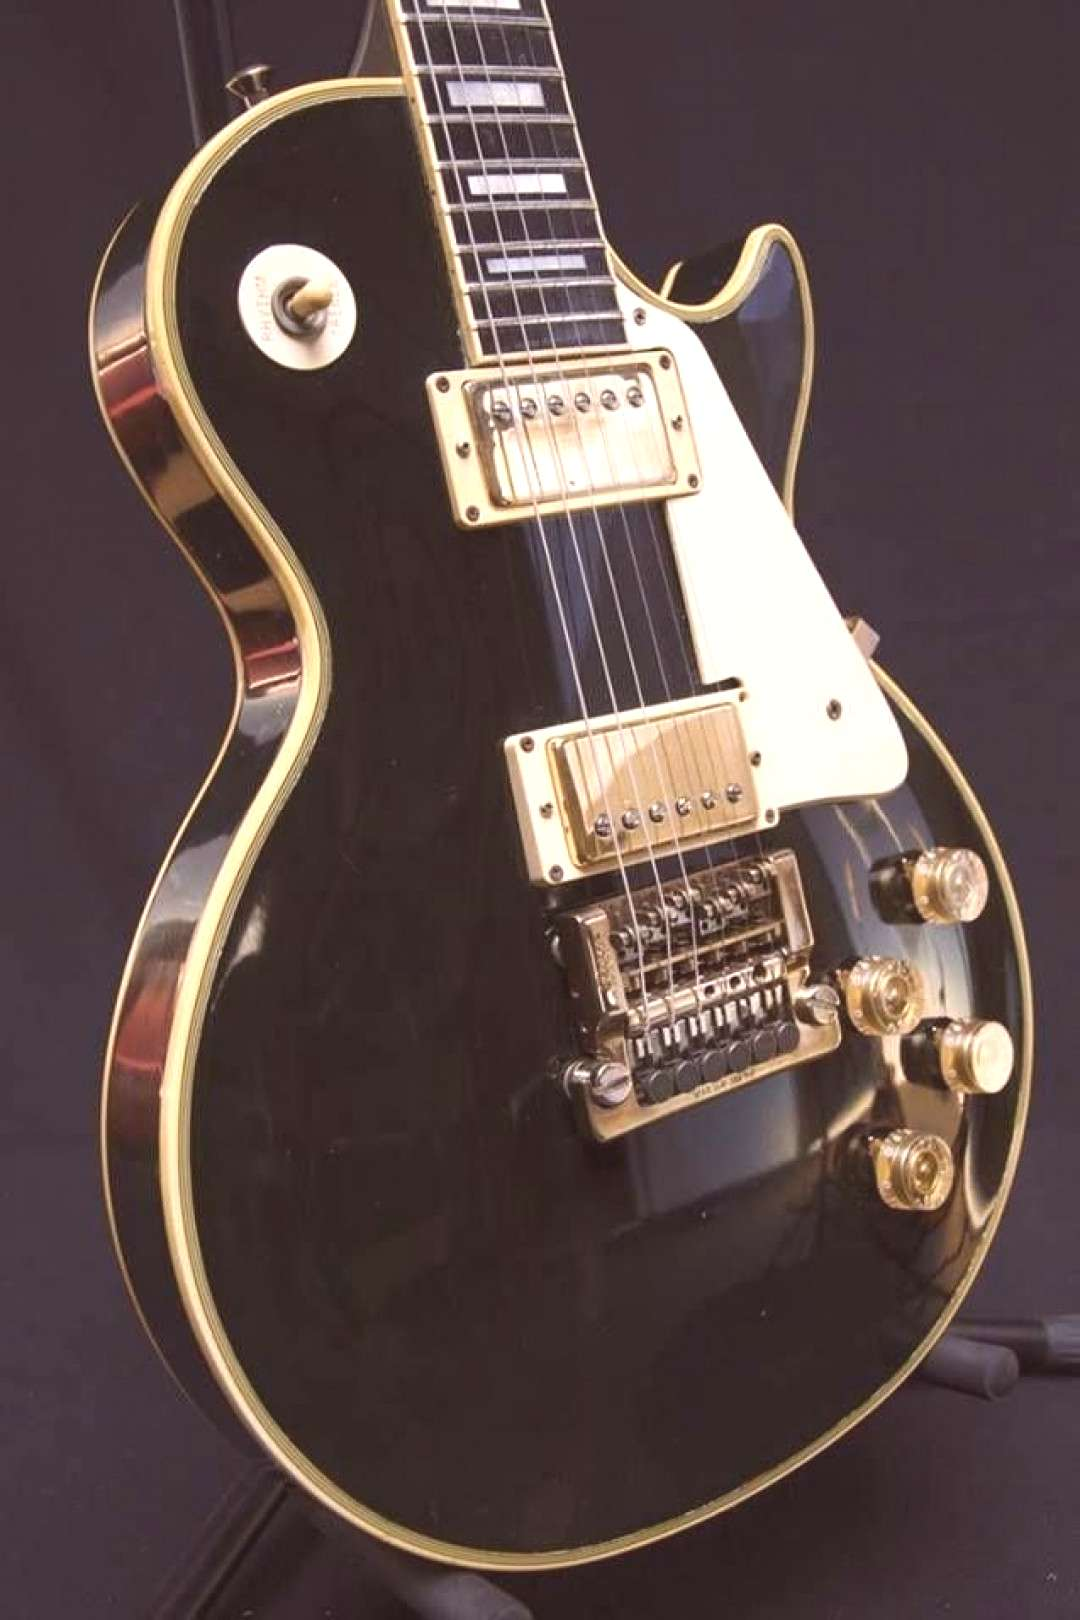 Top quality electric gibson guitars Top quality electric gibson guitars